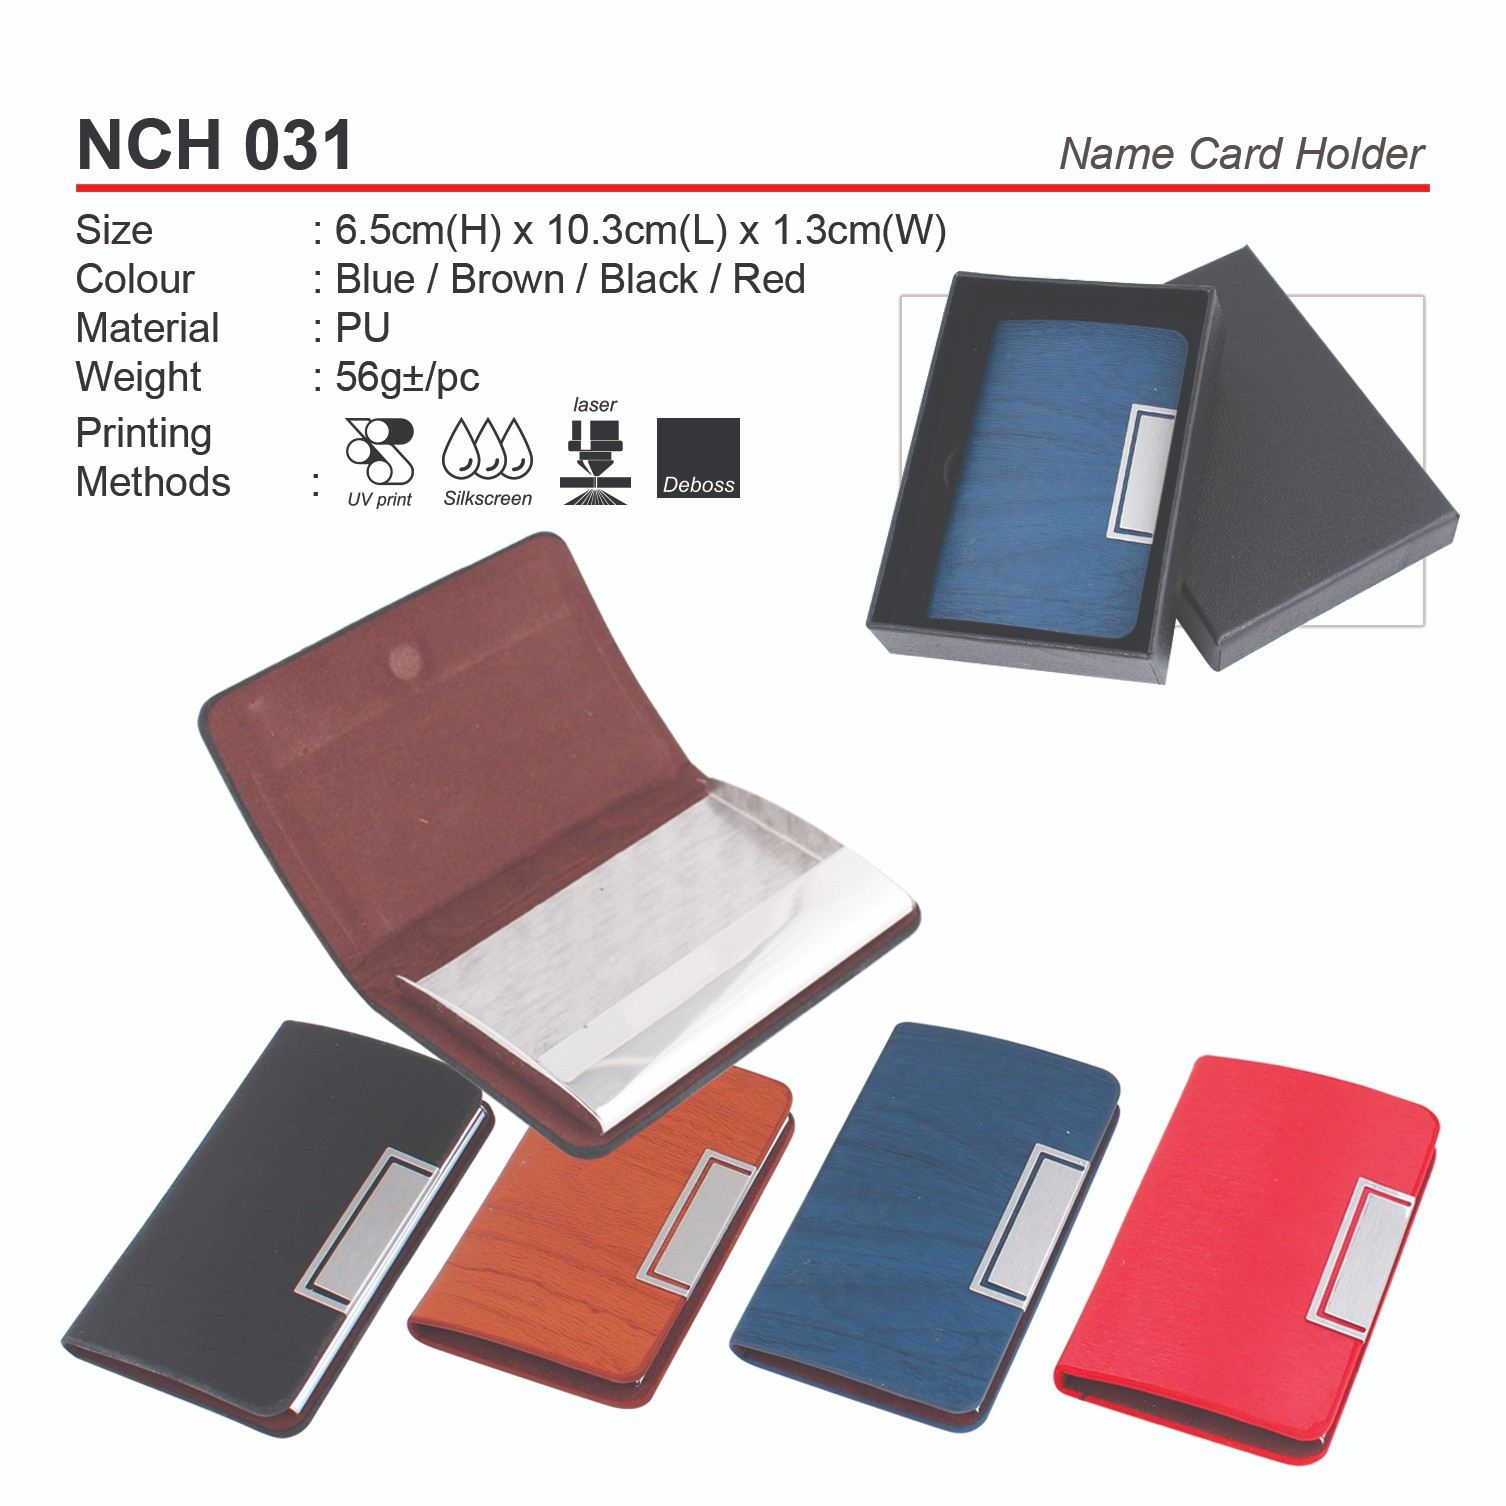 NCH031 Name Card Holder